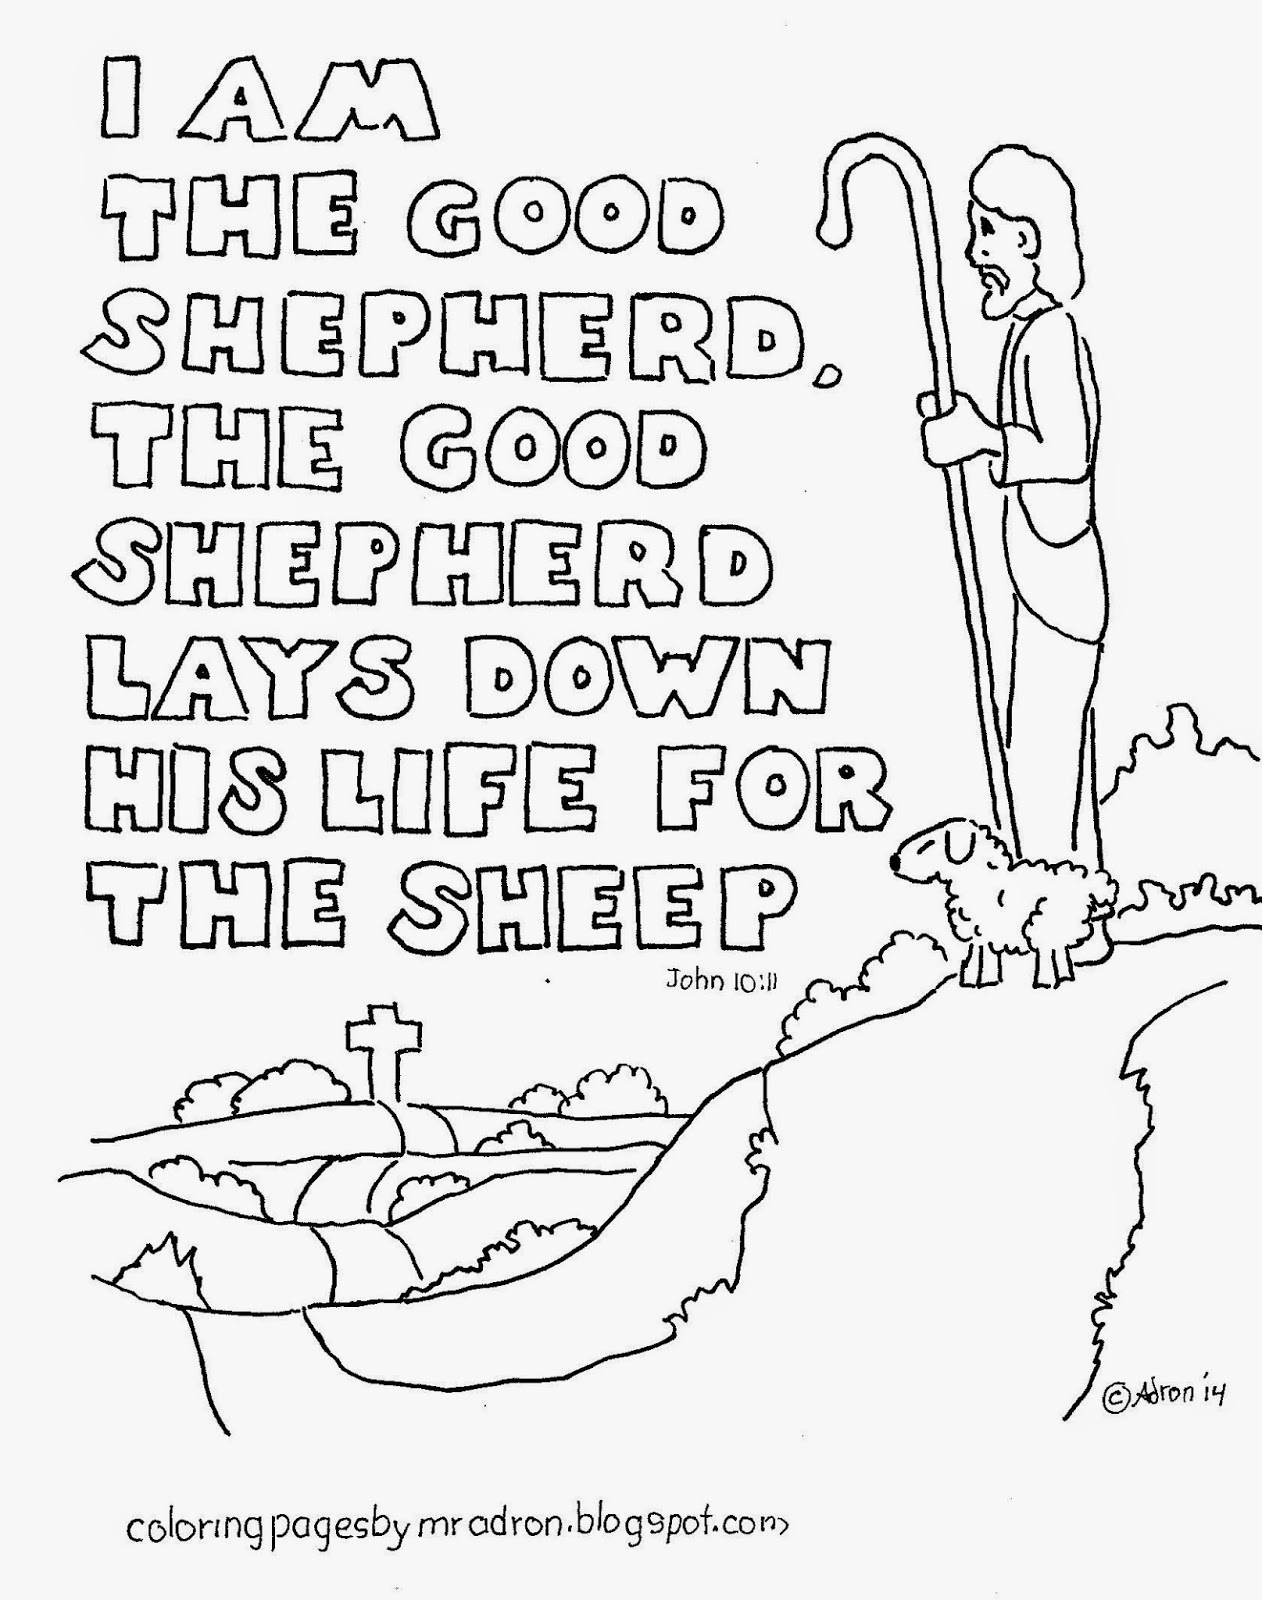 I AM the Good Shepherd Coloring Page Wallpaper Desktop HD